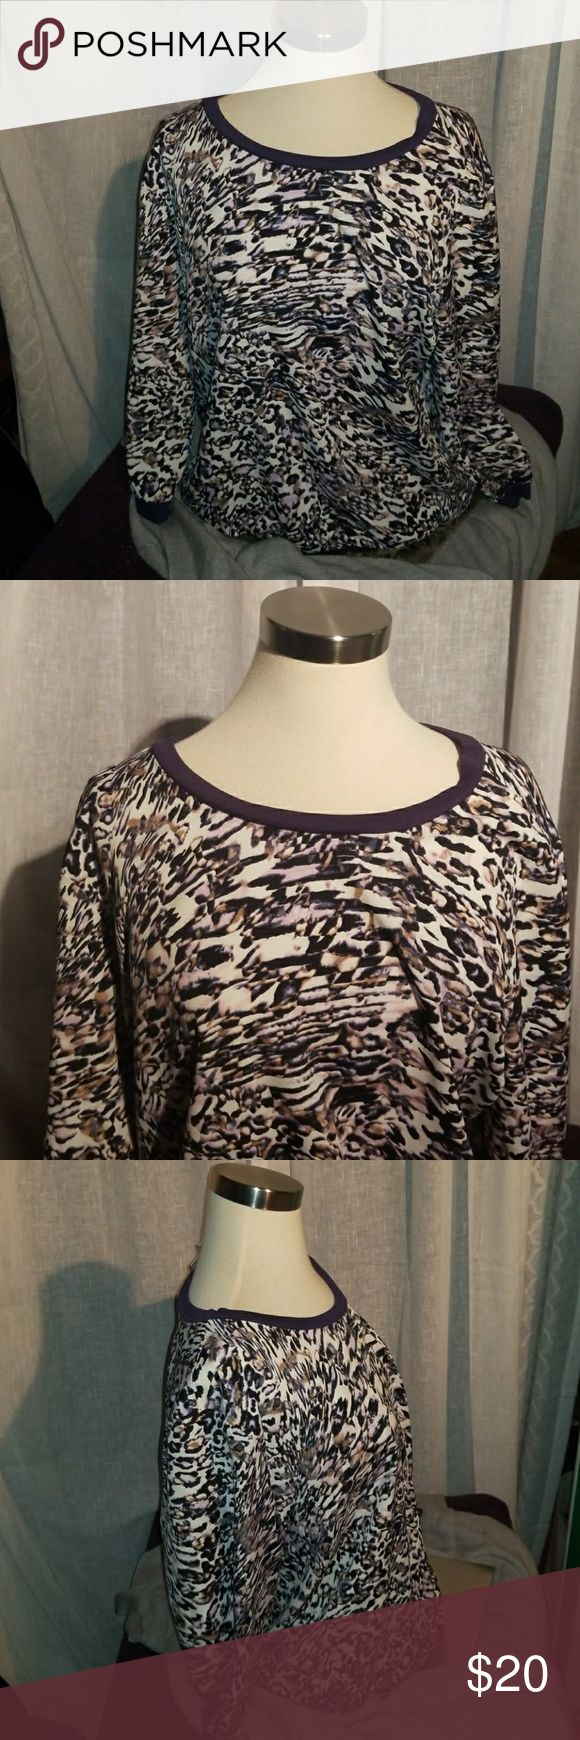 JENNIFER LOPEZ TOP  size large Brand new never worn with out tags. JLO top.        Deep purple stretchy band around wrist and at the bottom.   Polyester shell Jennifer Lopez Tops